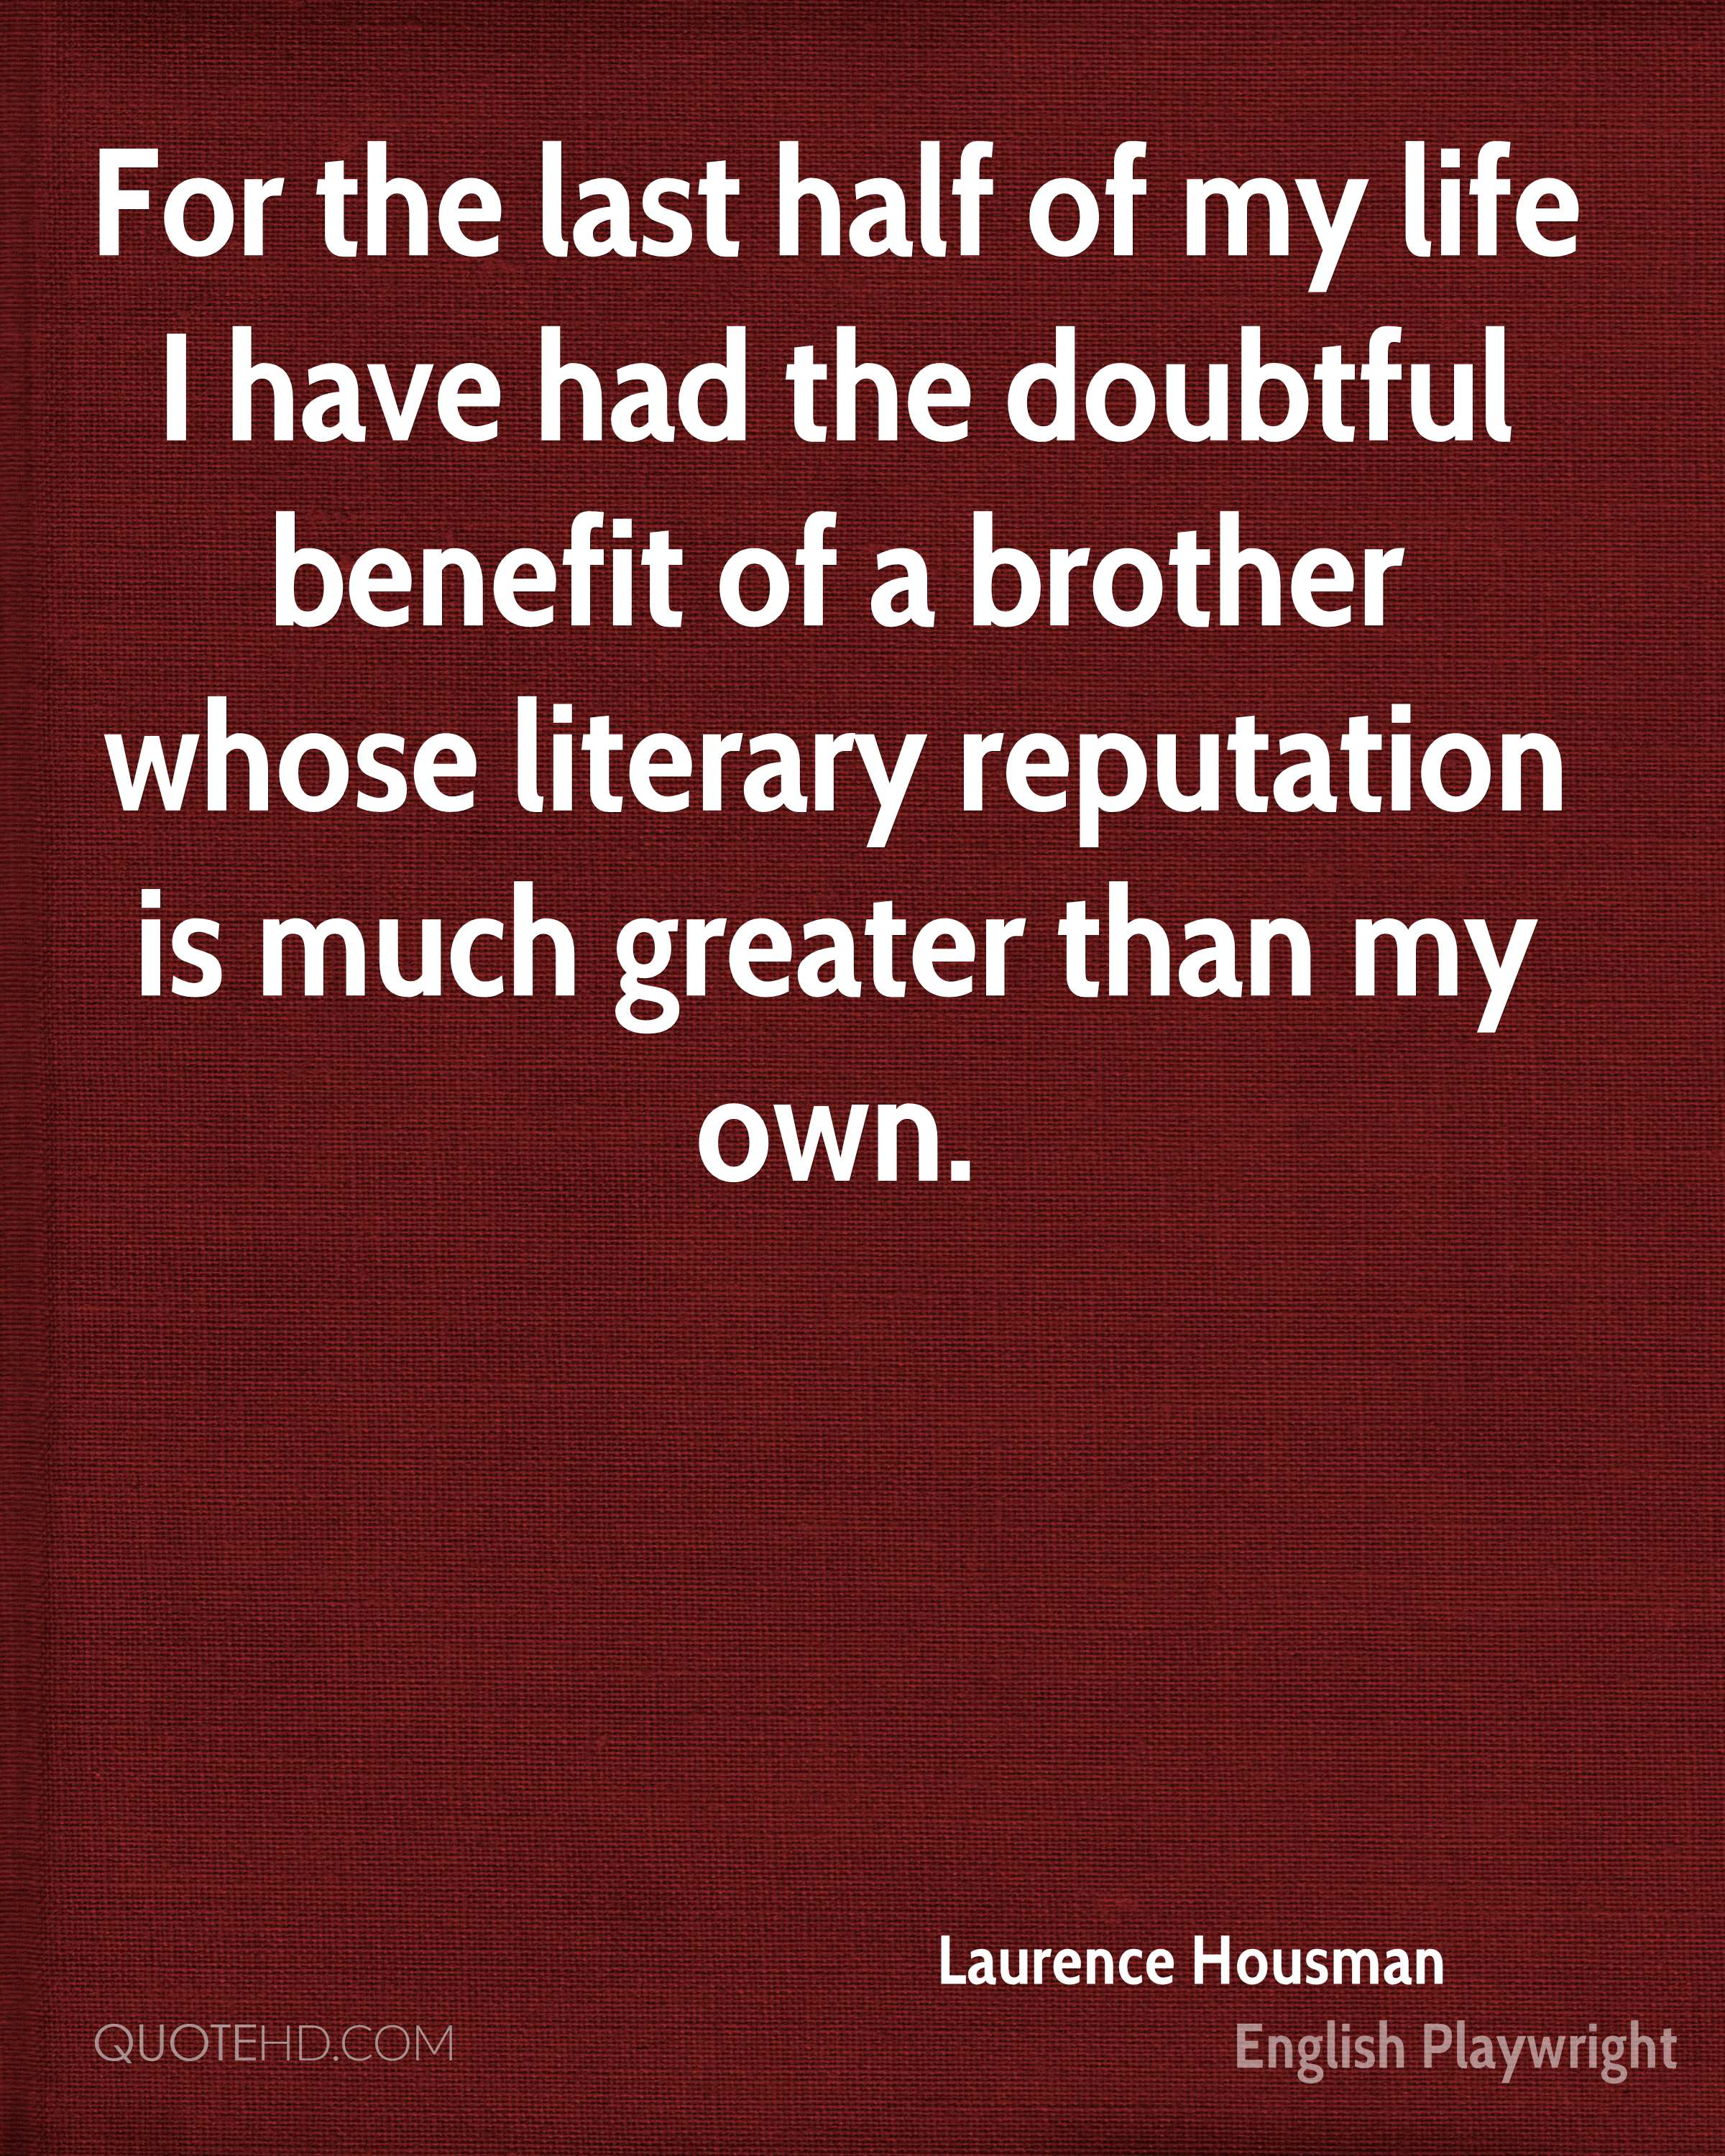 For the last half of my life I have had the doubtful benefit of a brother whose literary reputation is much greater than my own.